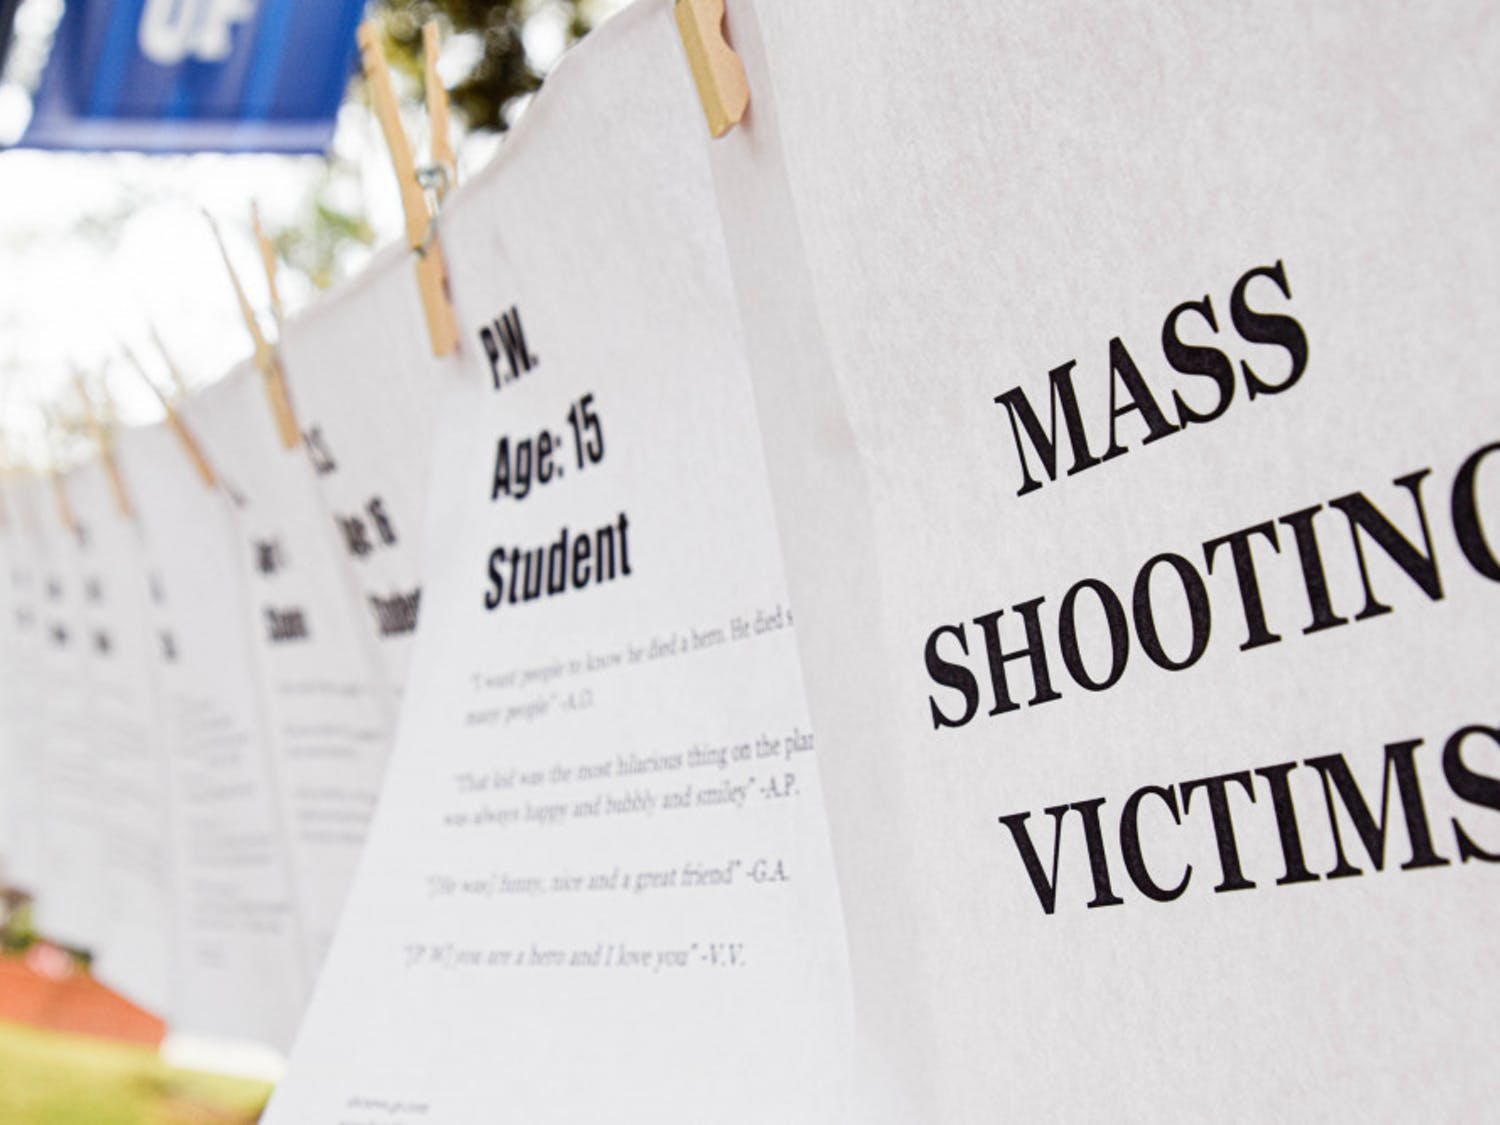 March For Our Lives Gainesville pins up pieces of paper with information about people who died in various mass shootings, such as their name, age and what they were like as told by loved ones.